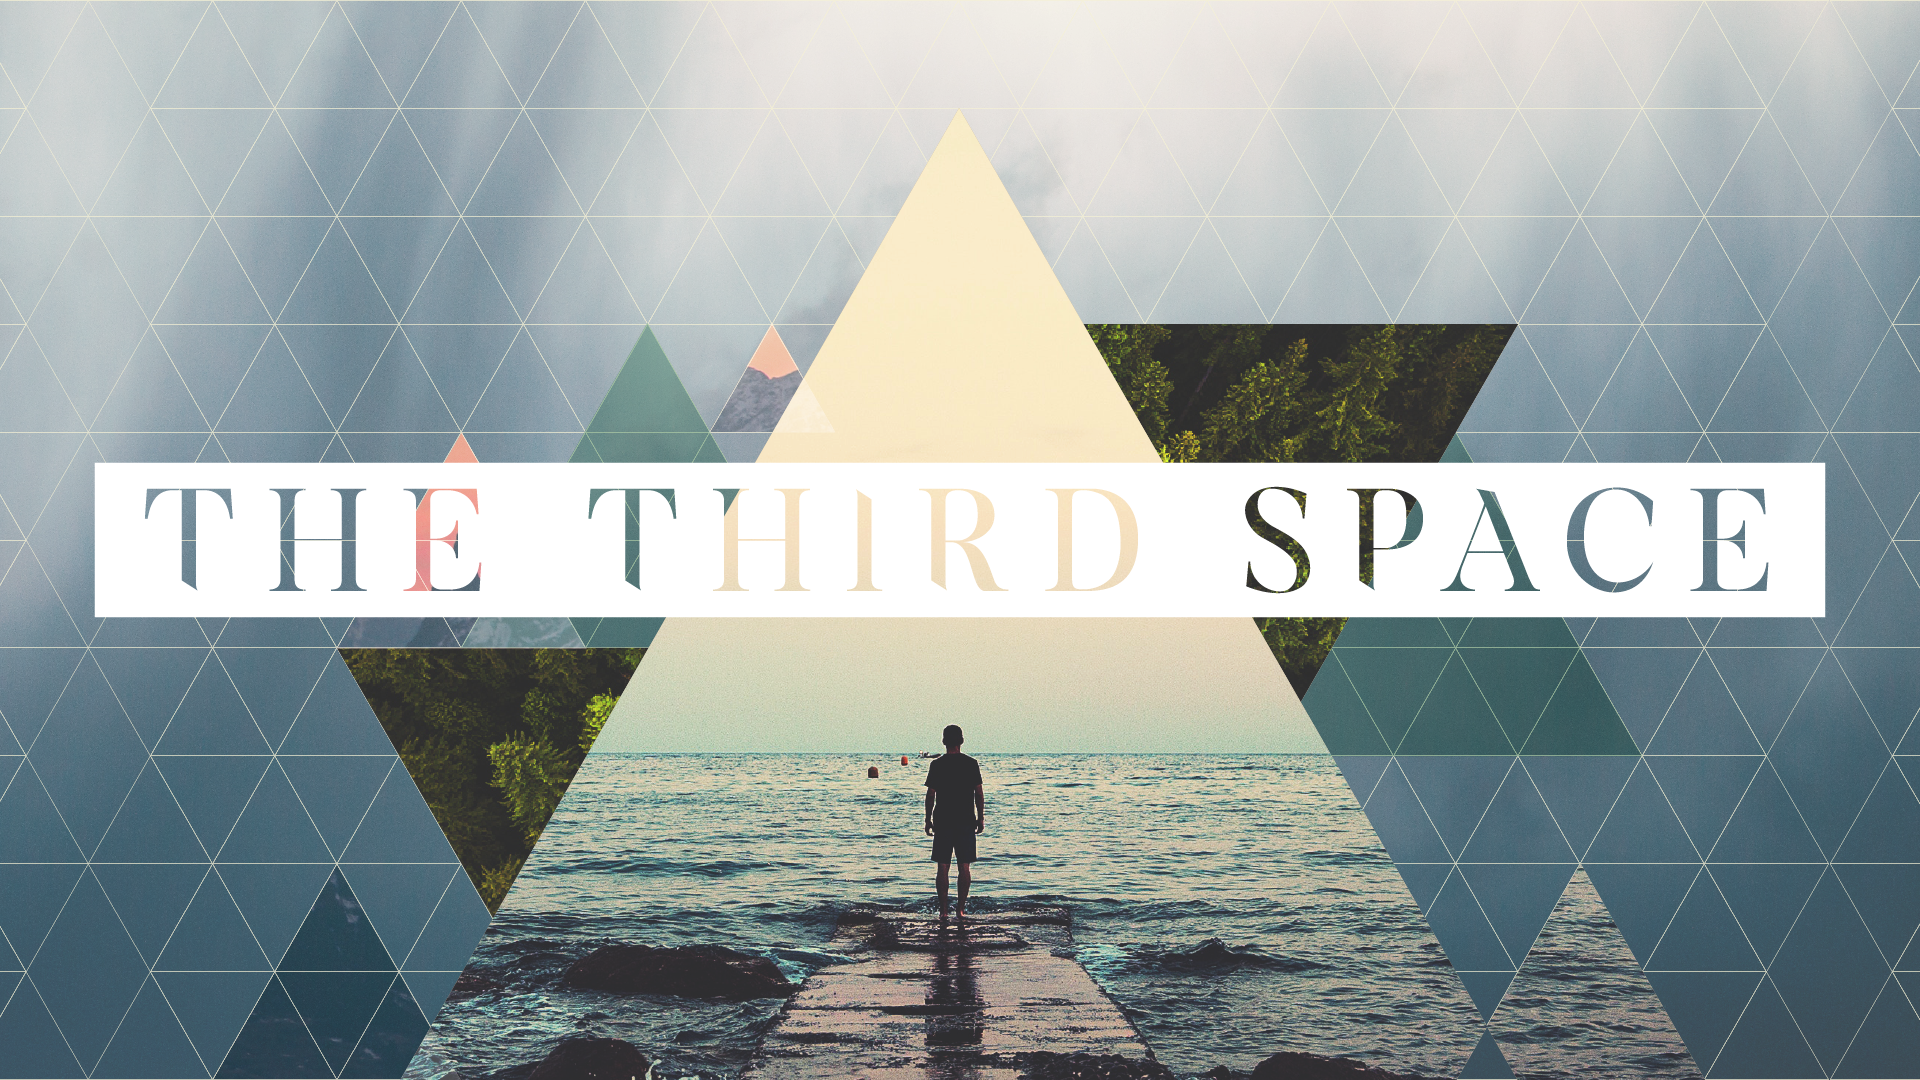 Third Space_SG_WF_5.18-01.png